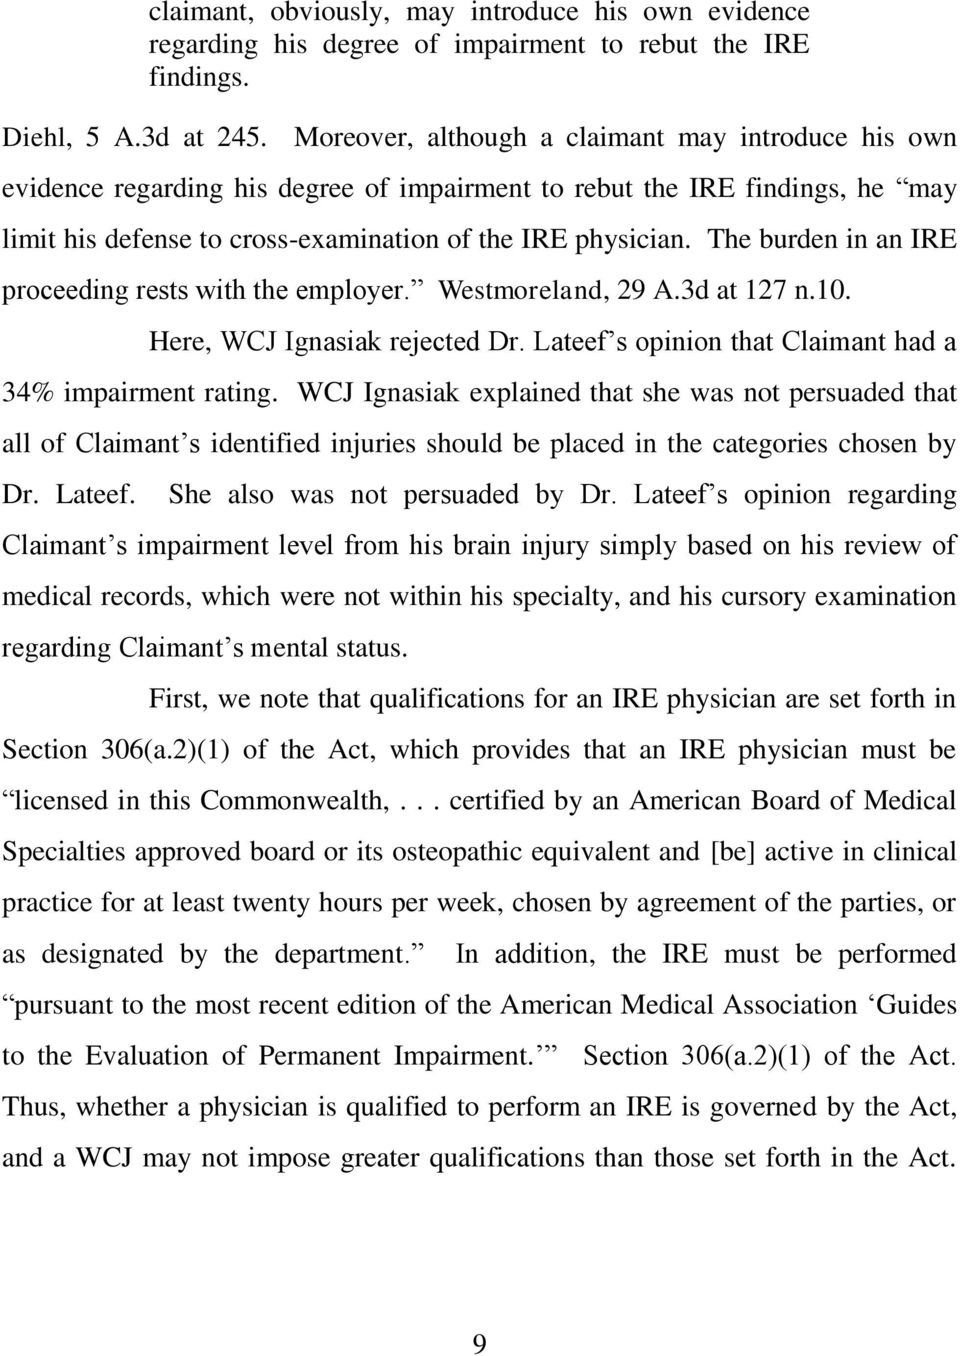 The burden in an IRE proceeding rests with the employer. Westmoreland, 29 A.3d at 127 n.10. Here, WCJ Ignasiak rejected Dr. Lateef s opinion that Claimant had a 34% impairment rating.